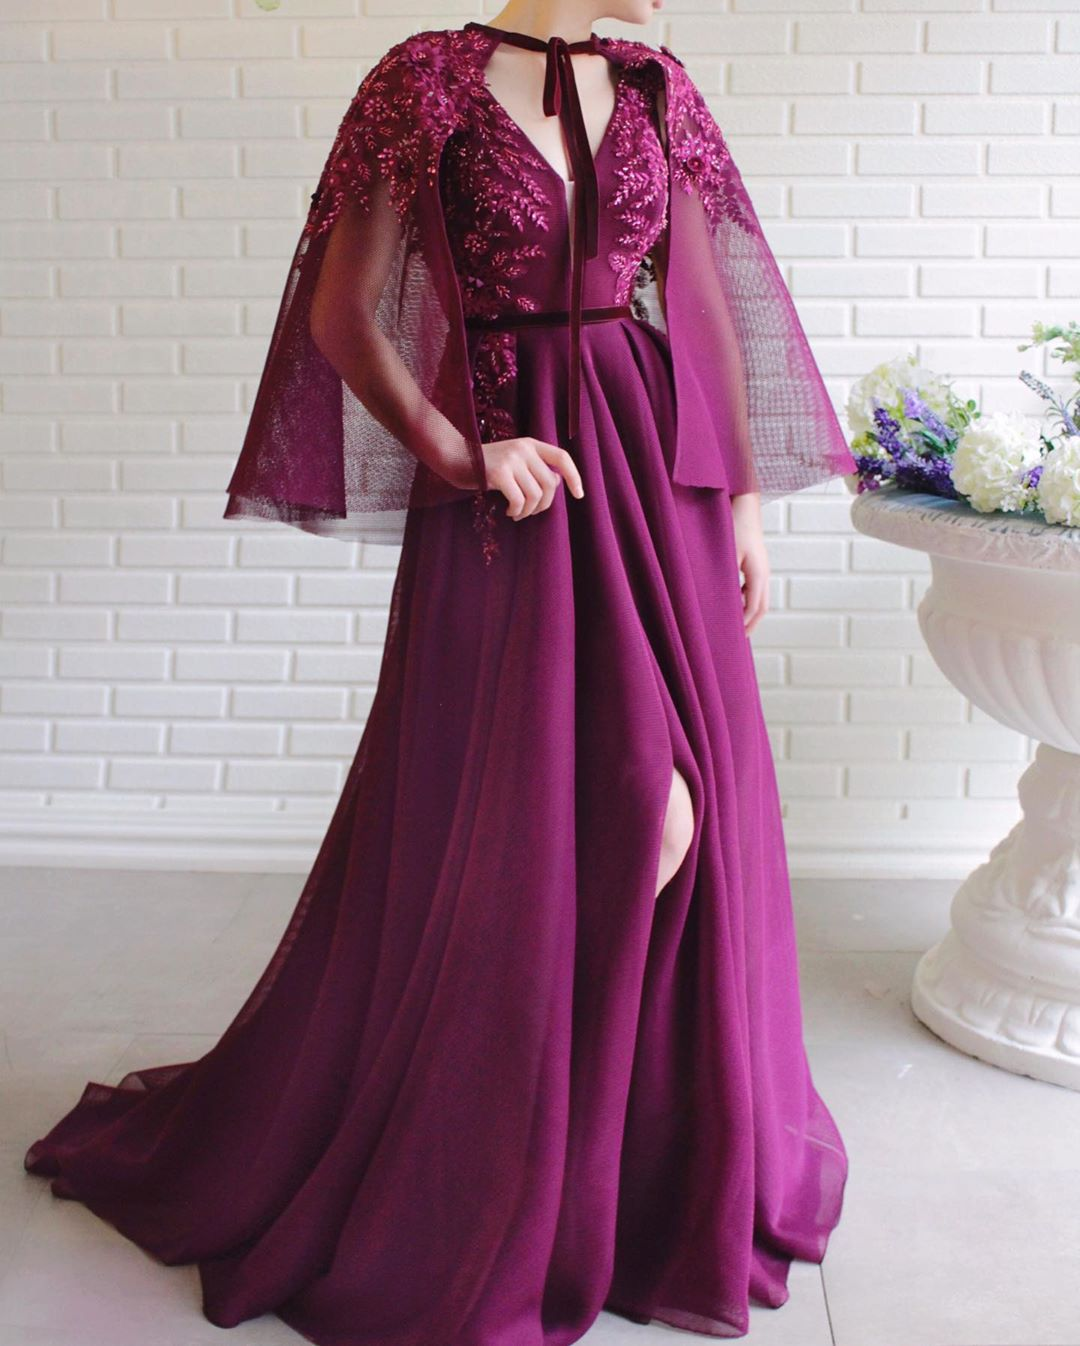 Long Dark Pink Dress with Chiffon Tie-up Shawl, Slit in Front with Sequin Embellishment.